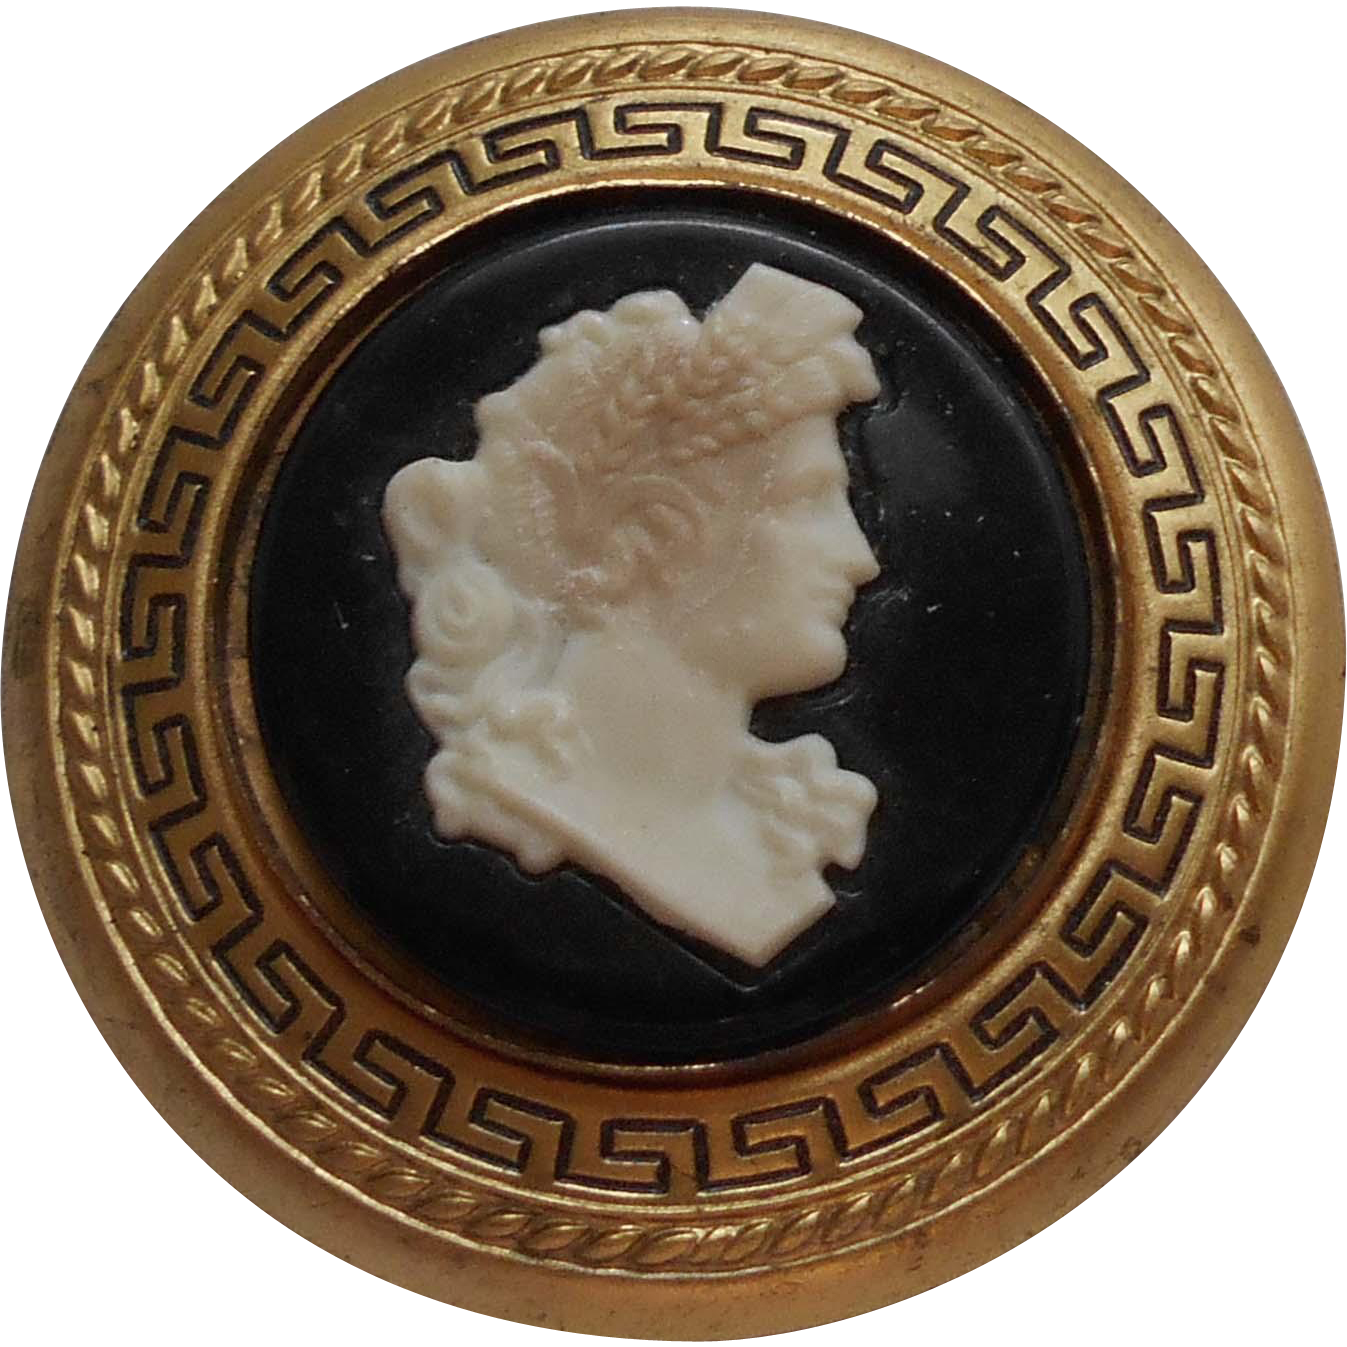 Vintage 1930's GWTW Lux Soap Scarlett's Cameo Brooch Premium ~ Like the one Scarlett Wore in Gone With the Wind